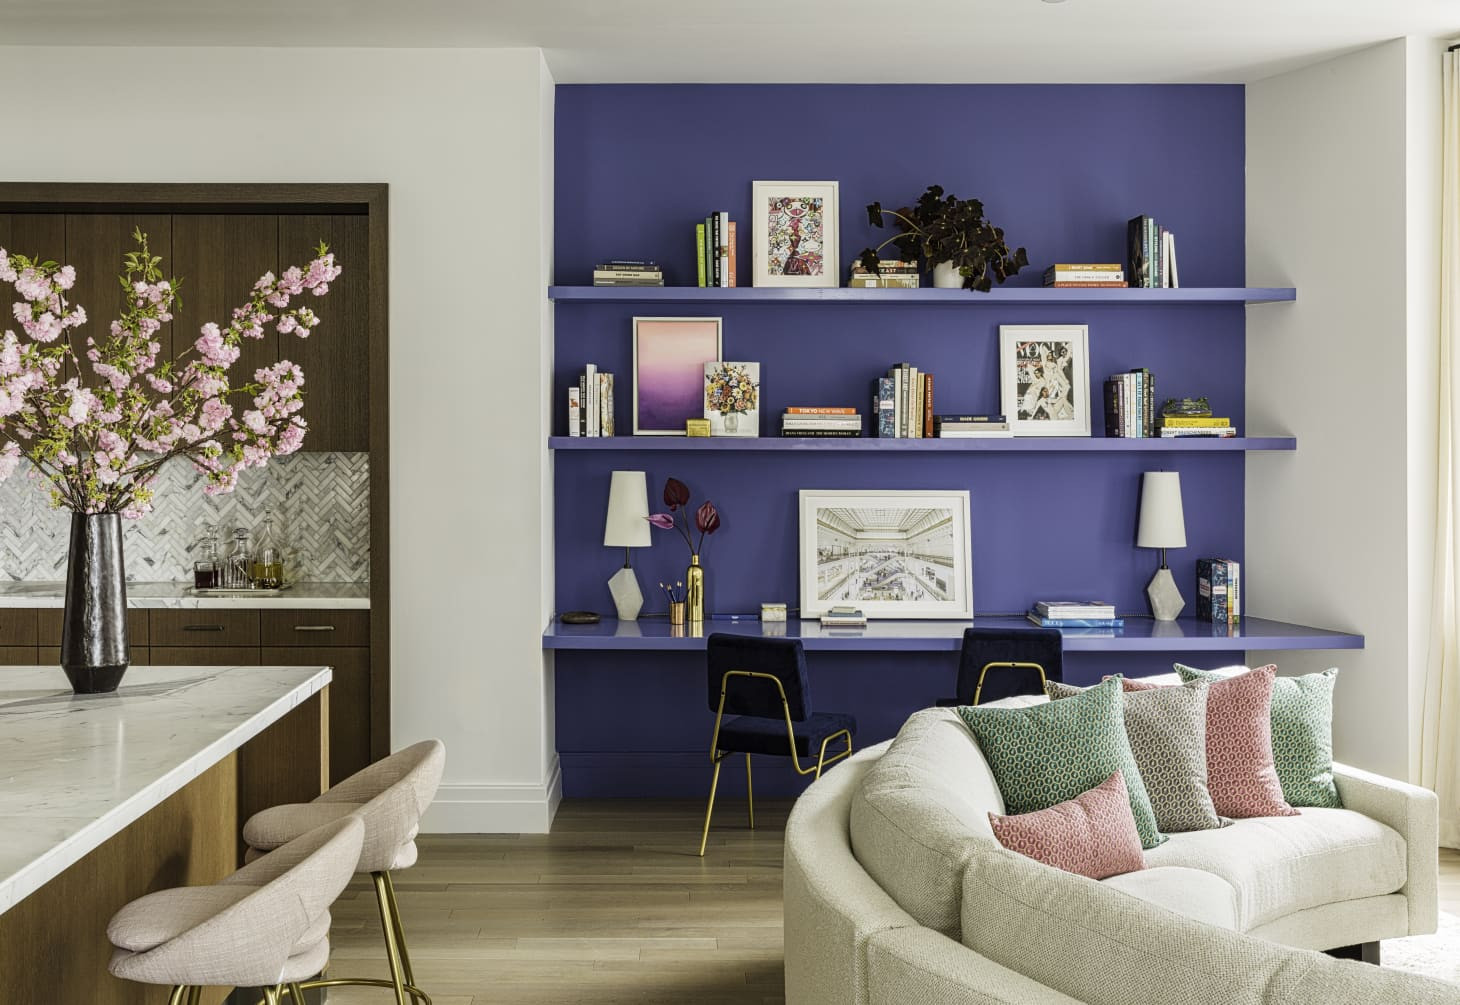 Popular Living Room Wall Colors  The Best Blue Living Room Wall Colors According to Real